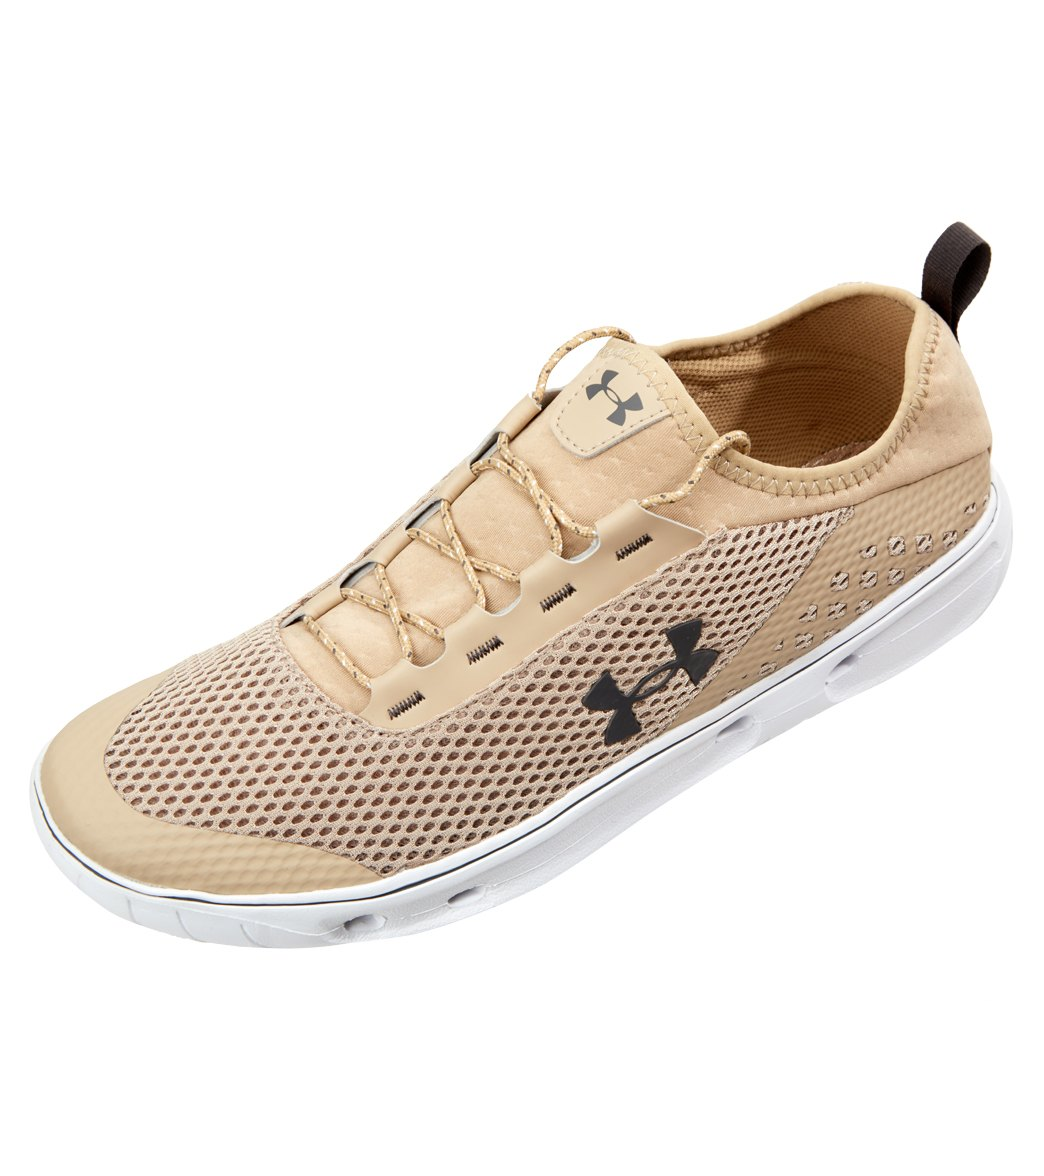 Under Armour Men\'s Kilchis Water Shoe at SwimOutlet.com - Free Shipping